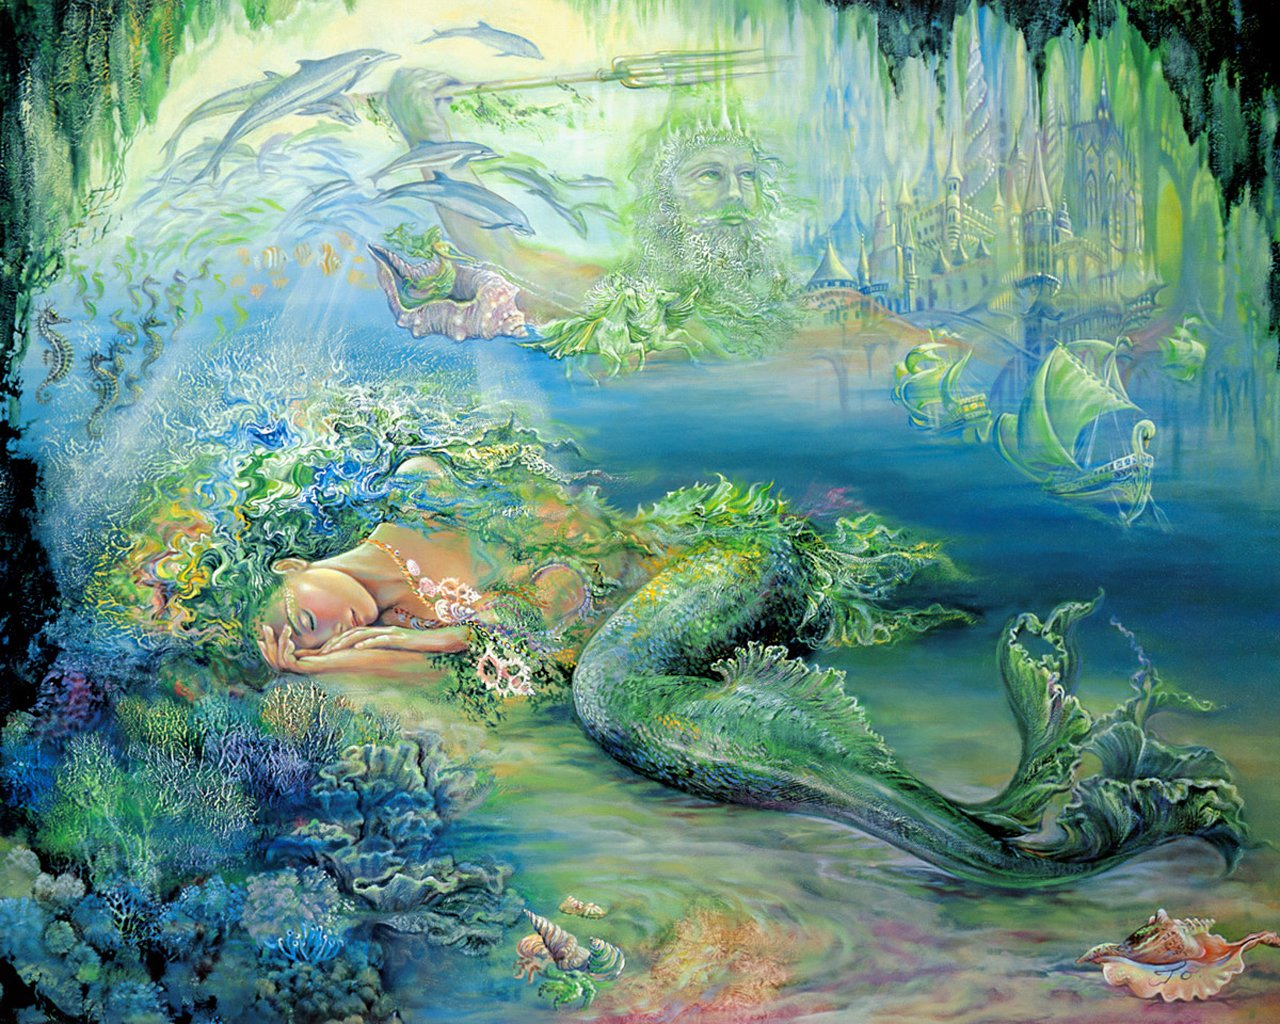 http://3.bp.blogspot.com/-MNvjmGgExKg/TrN2l6EfULI/AAAAAAAADk4/uwfKudfuF9I/s1600/Fantasy_wallpapers_pictures_screensavers__art_drawing_paintings_dreams_atlantis.jpg